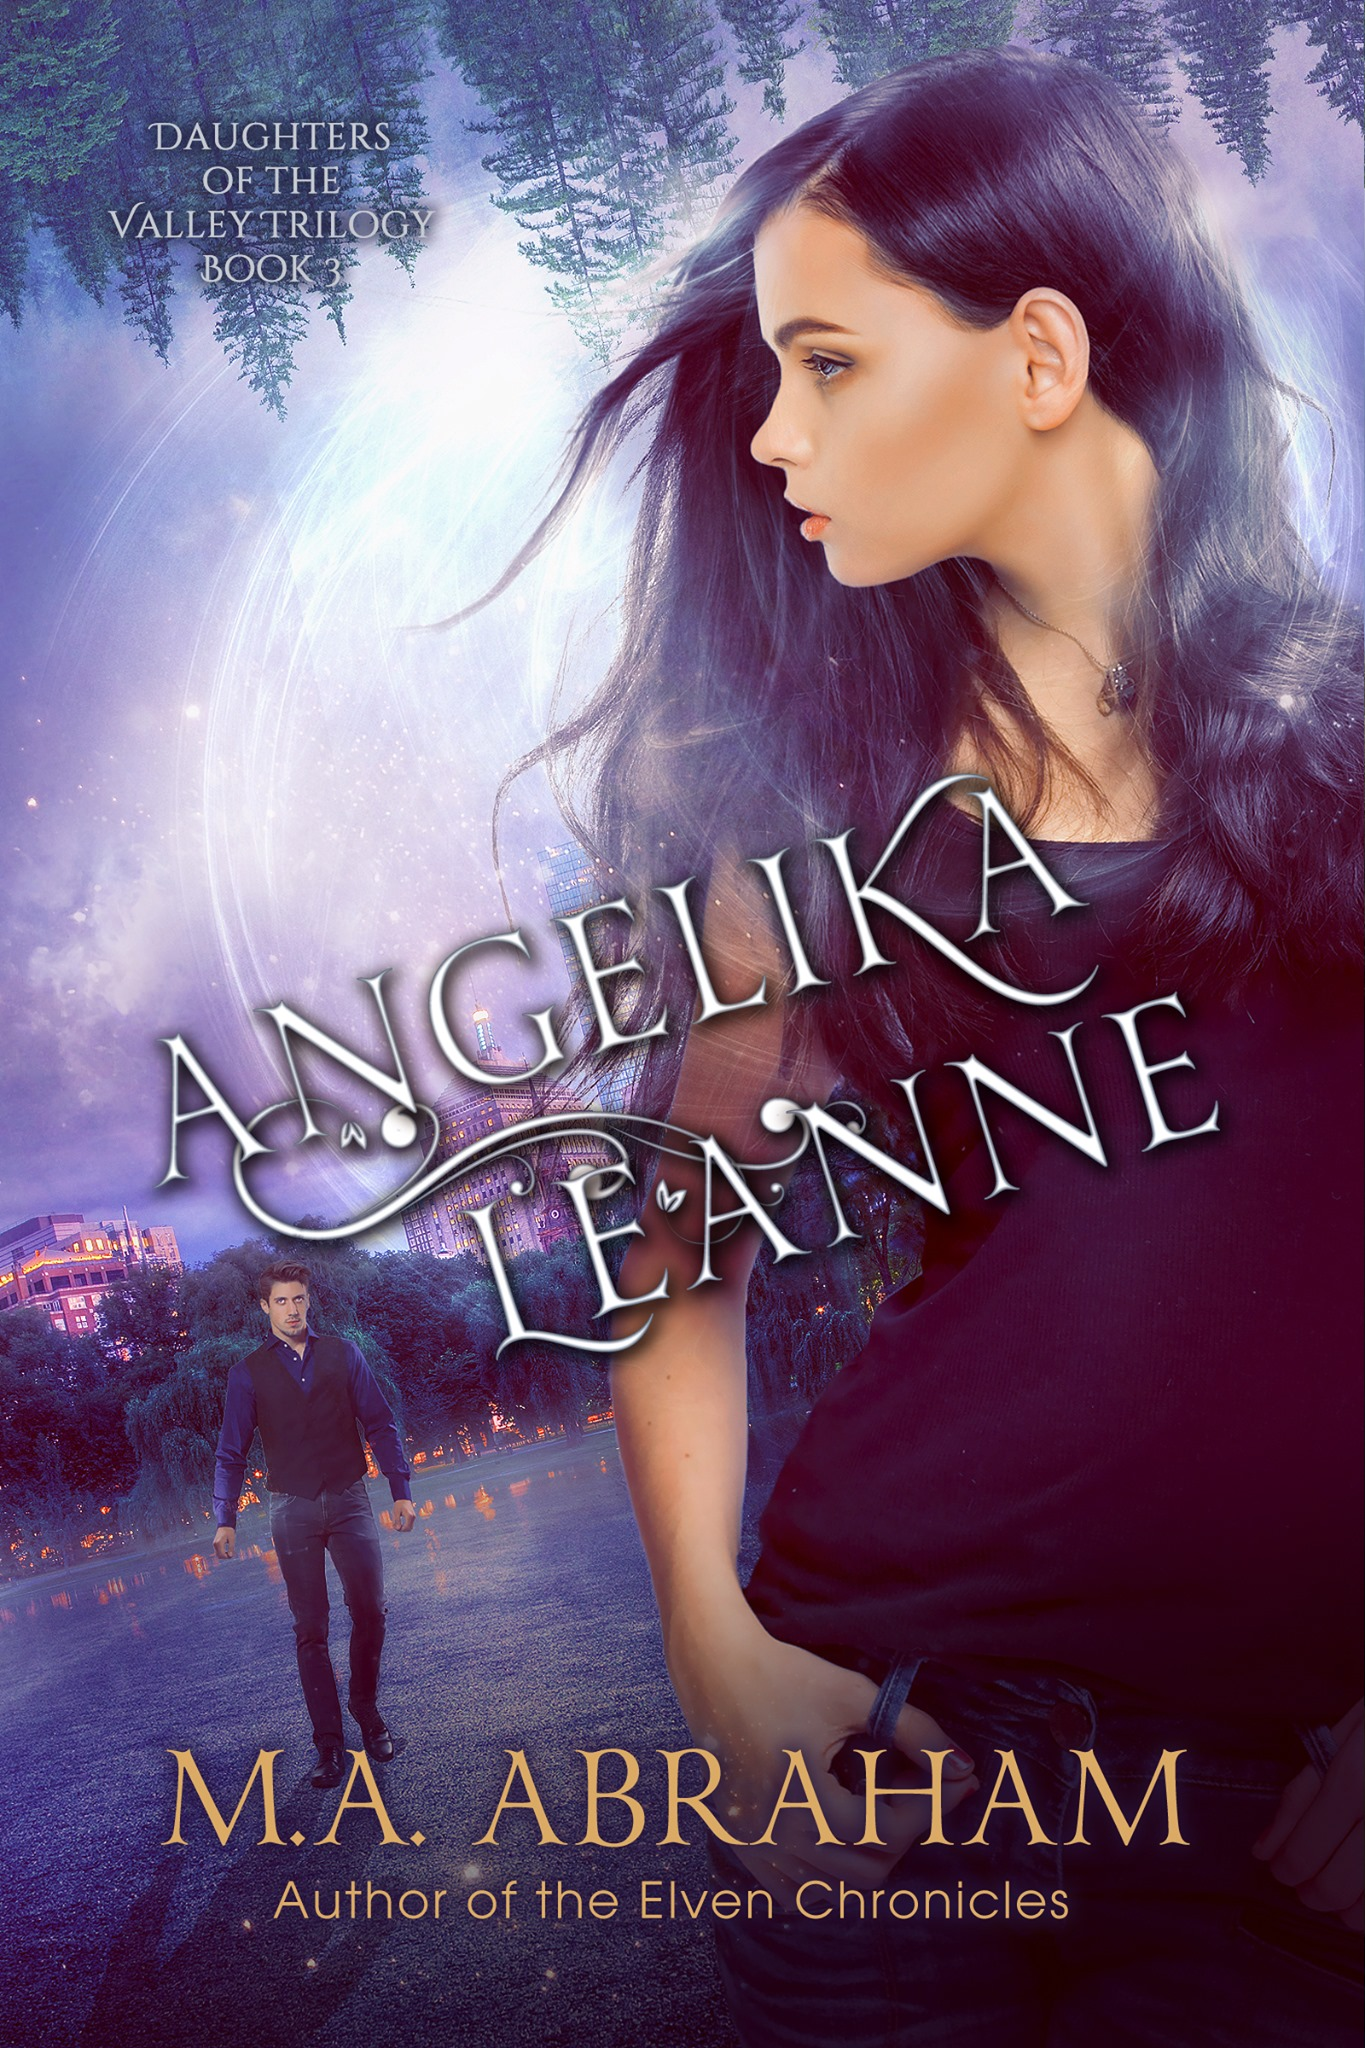 Angelika-cover-lr.jpg